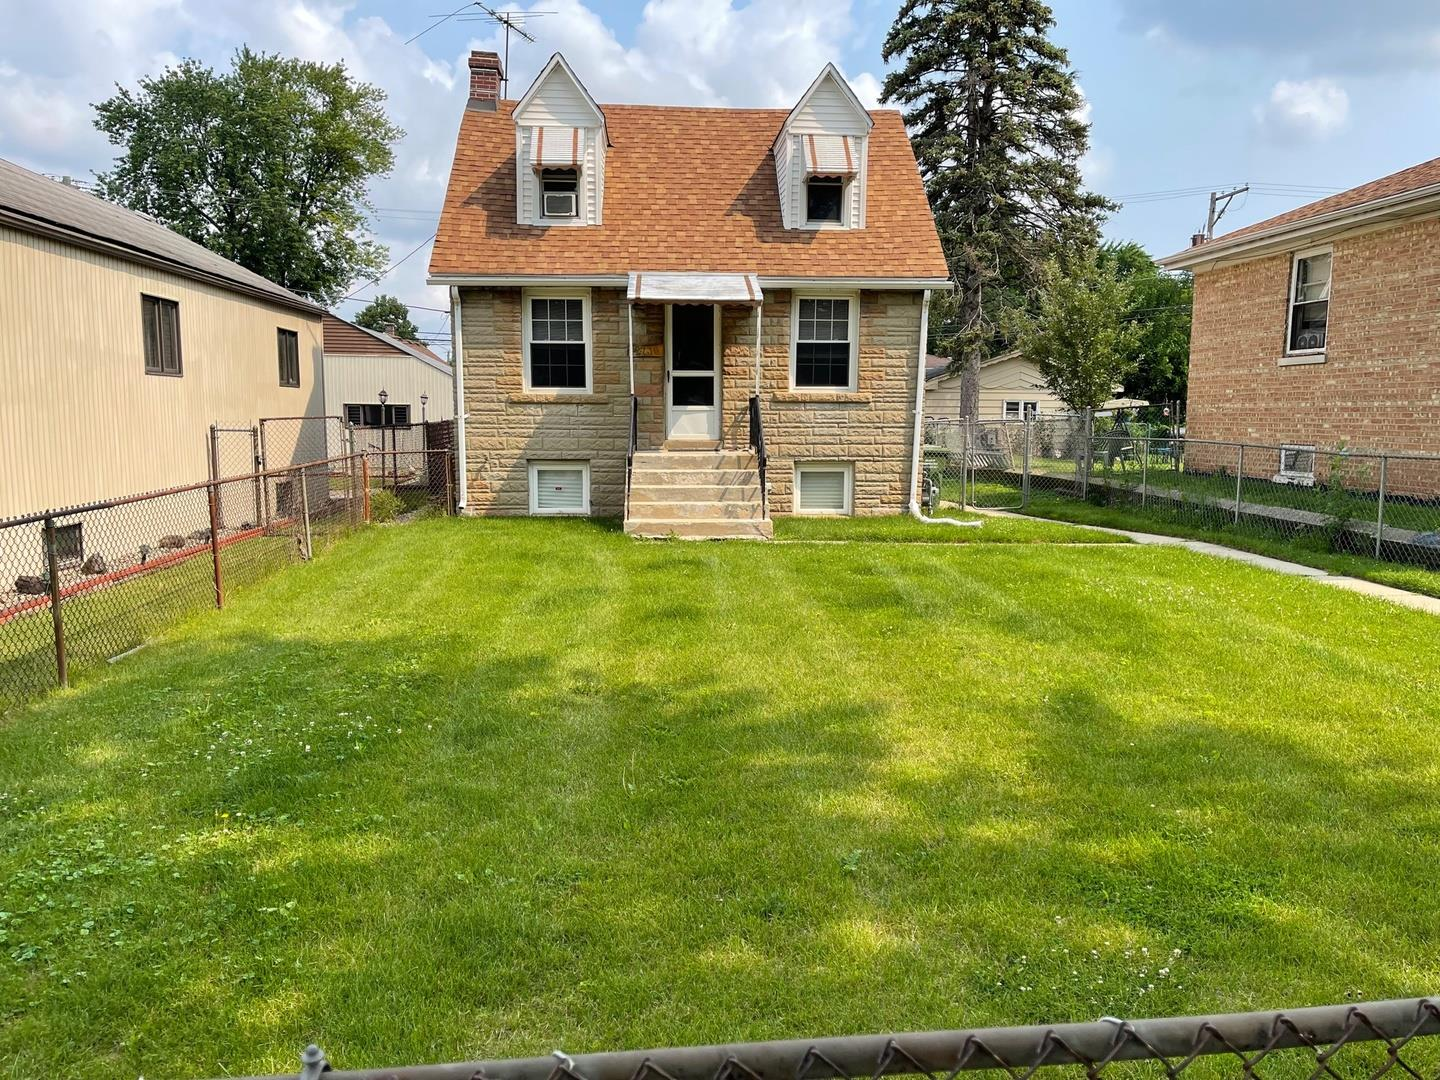 2730 W 98th Place, Evergreen Park, IL 60805 - #: 11161820